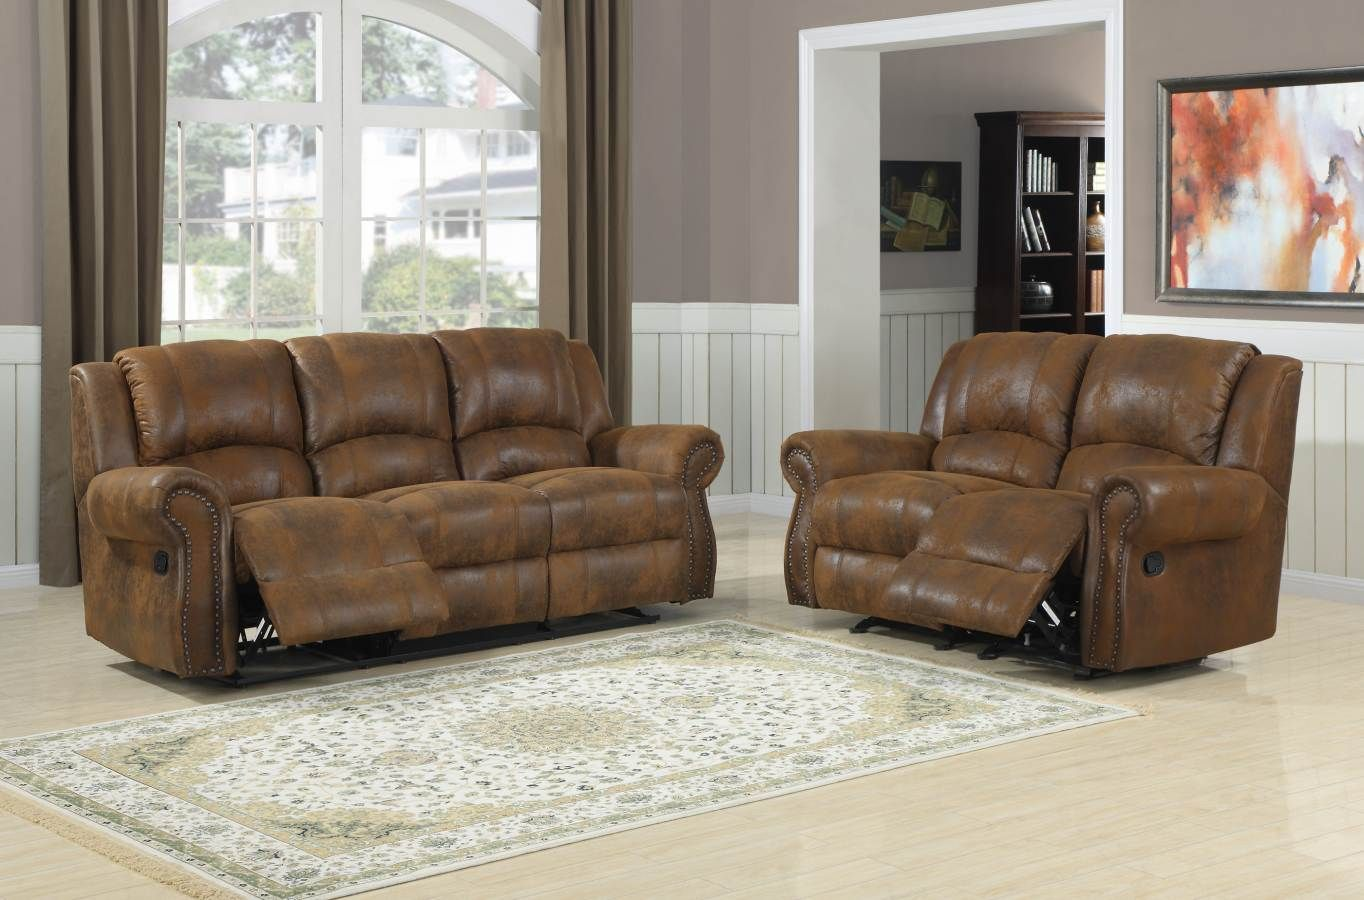 Furniture & Design :: Living room furniture :: Sofas and Sets :: Motion sofa  sets :: 2 pc Quinn collection brown bomber jacket microfiber fabric  upholstered ... - Quinn Bomber Jacket Microfiber Metal Double Rocker Recliner Love